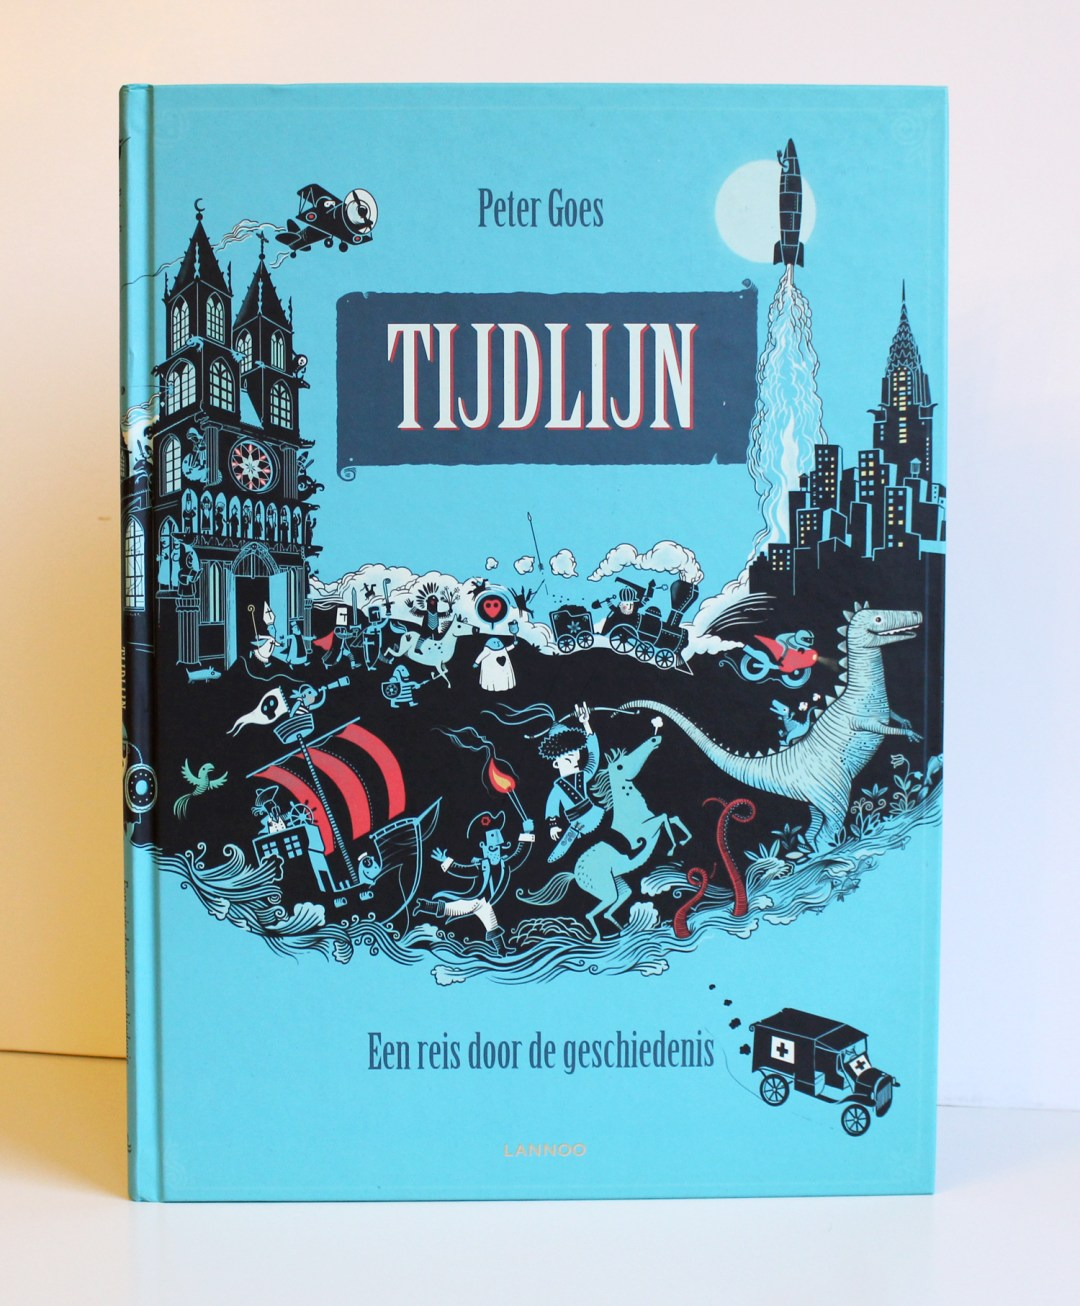 Winter book haul - Tijdlijn / Timeline by Peter Goes